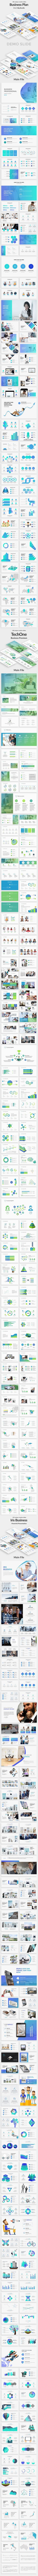 Business Plan - 3 in 1 Bundle Powerpoint Template - Business PowerPoint Templates